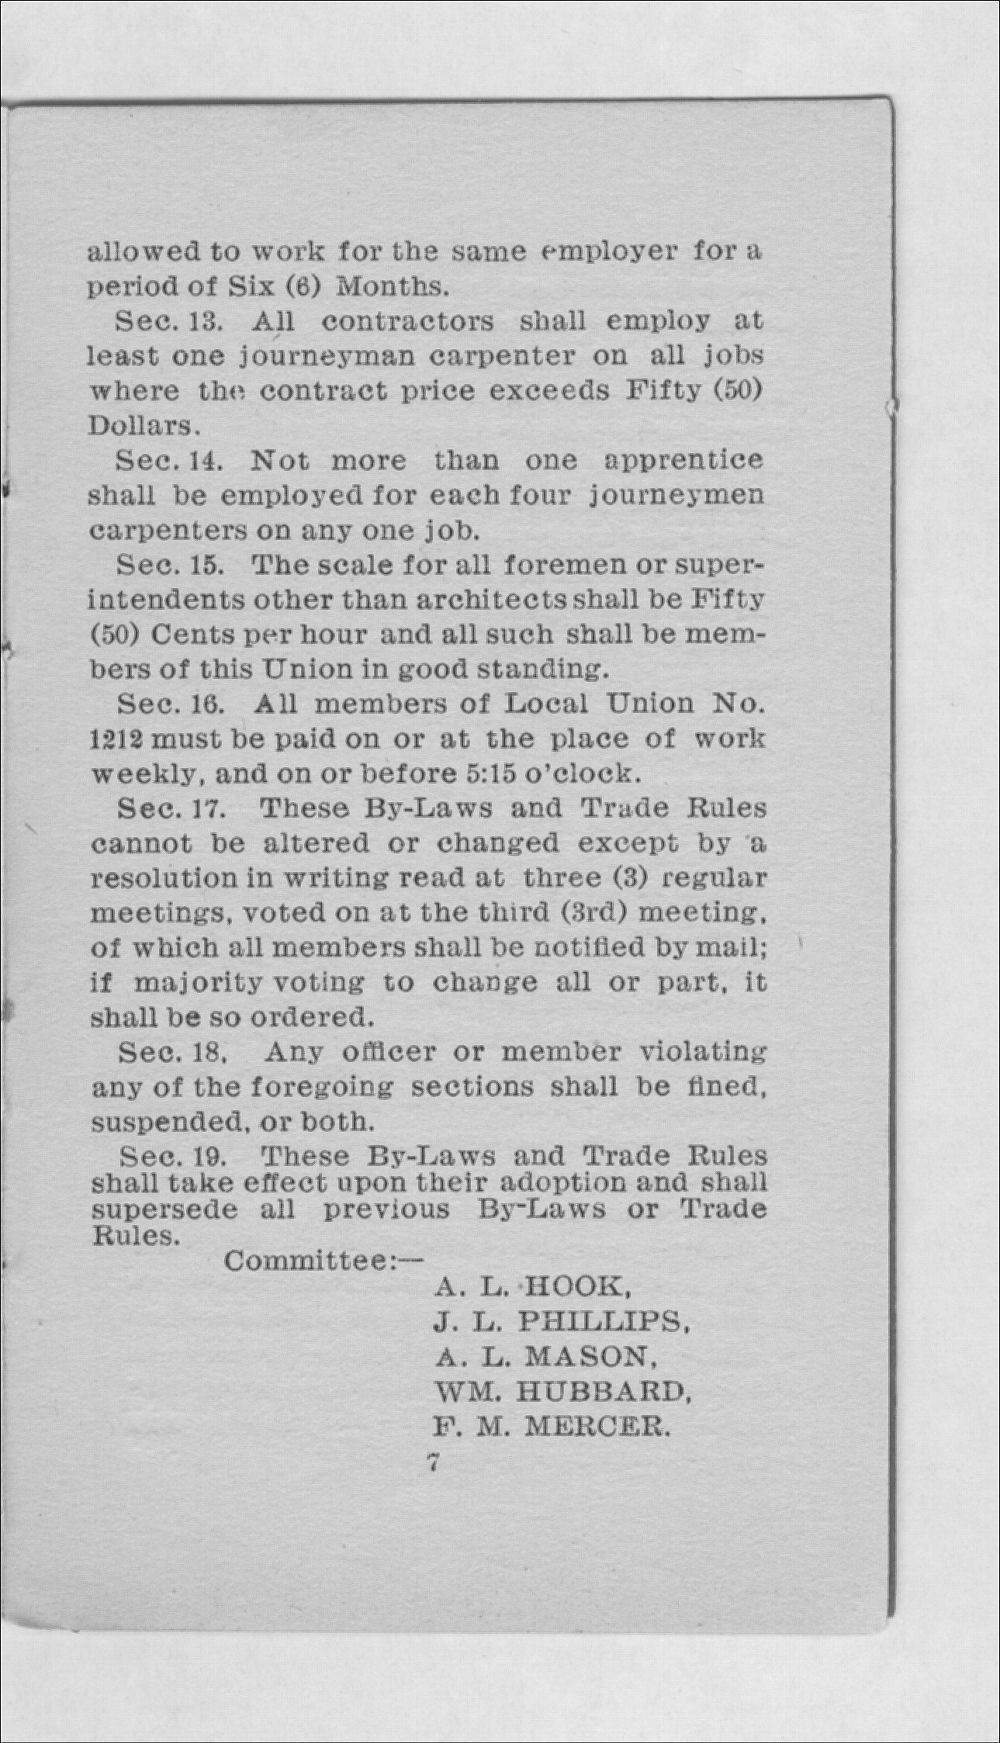 By-laws and trade rules of Carpenter's Union No. 1212 - 7